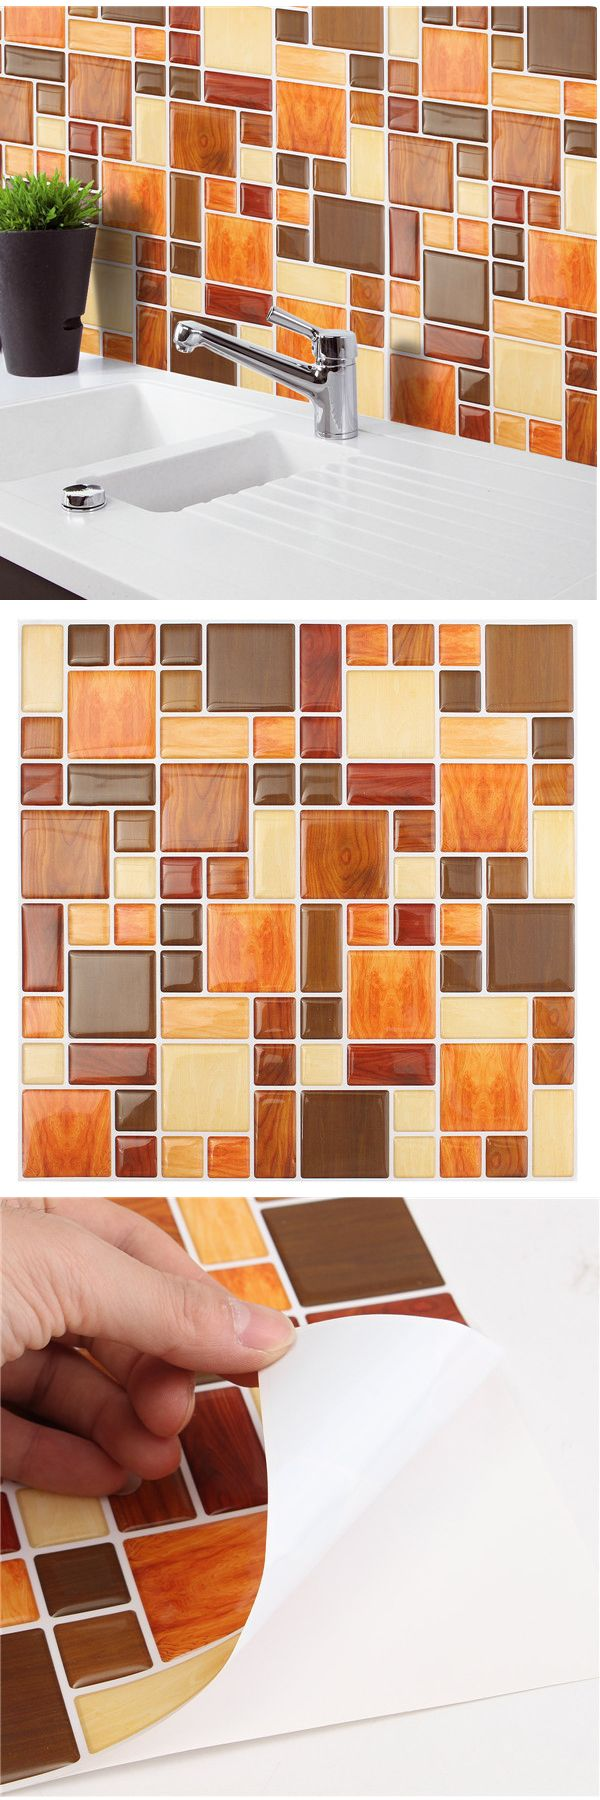 I love decorate my home with the gadgets:)$7.11 Brown Creative 3D Mosaic Wall Stickers Backsplash Tile Wallpaper Home Bathroom Kitchen Decor